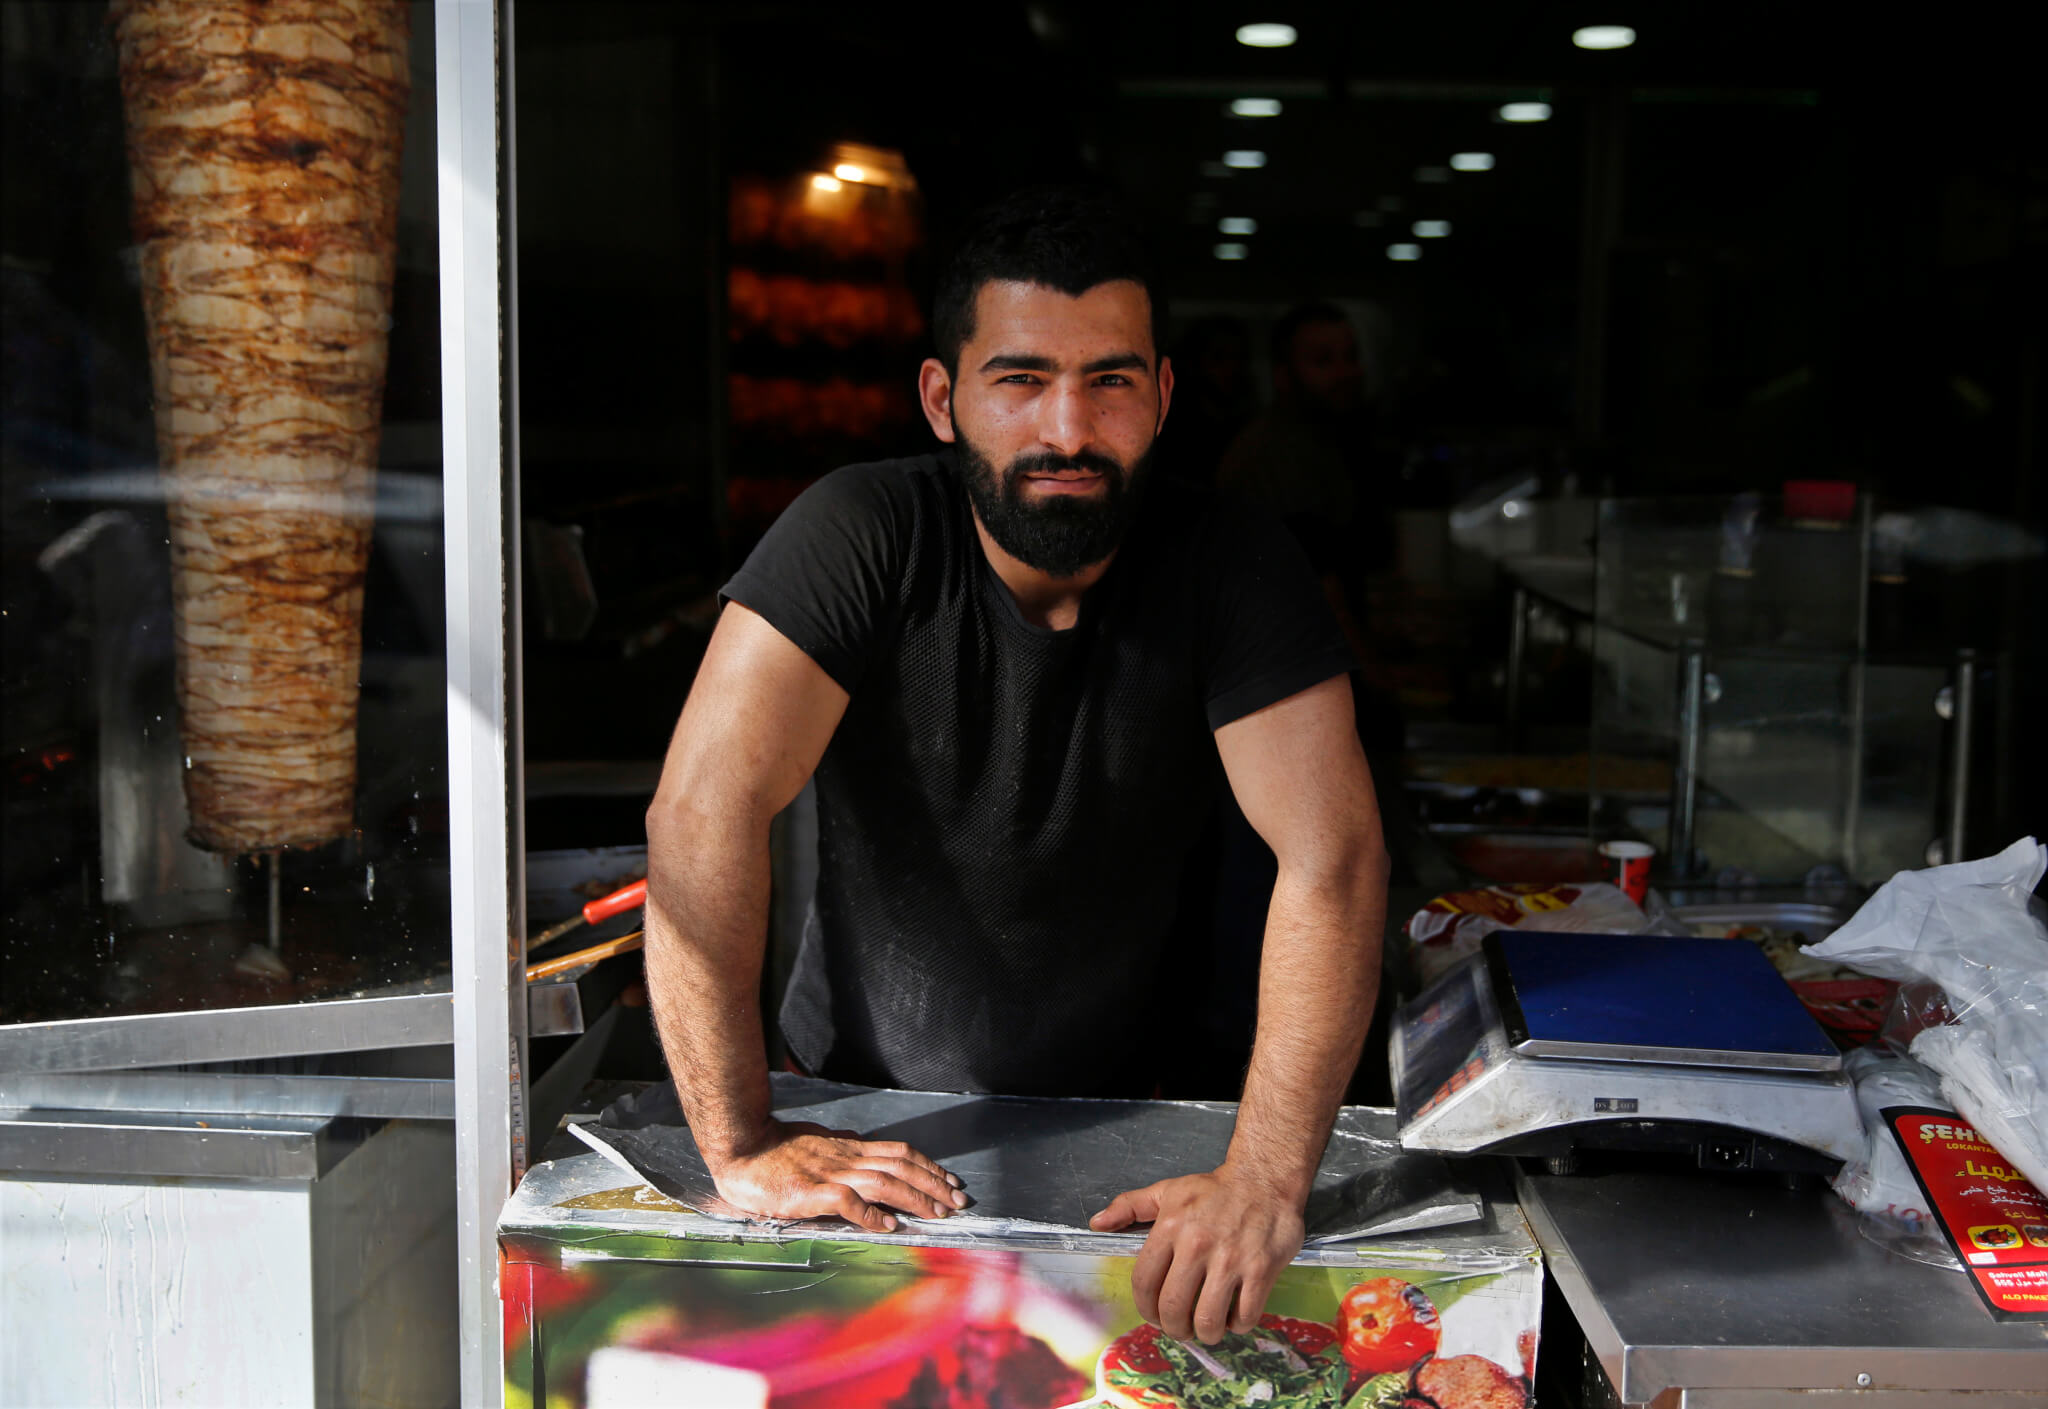 Syrian Refugees Are Often Steered Into Illegal Jobs - Al